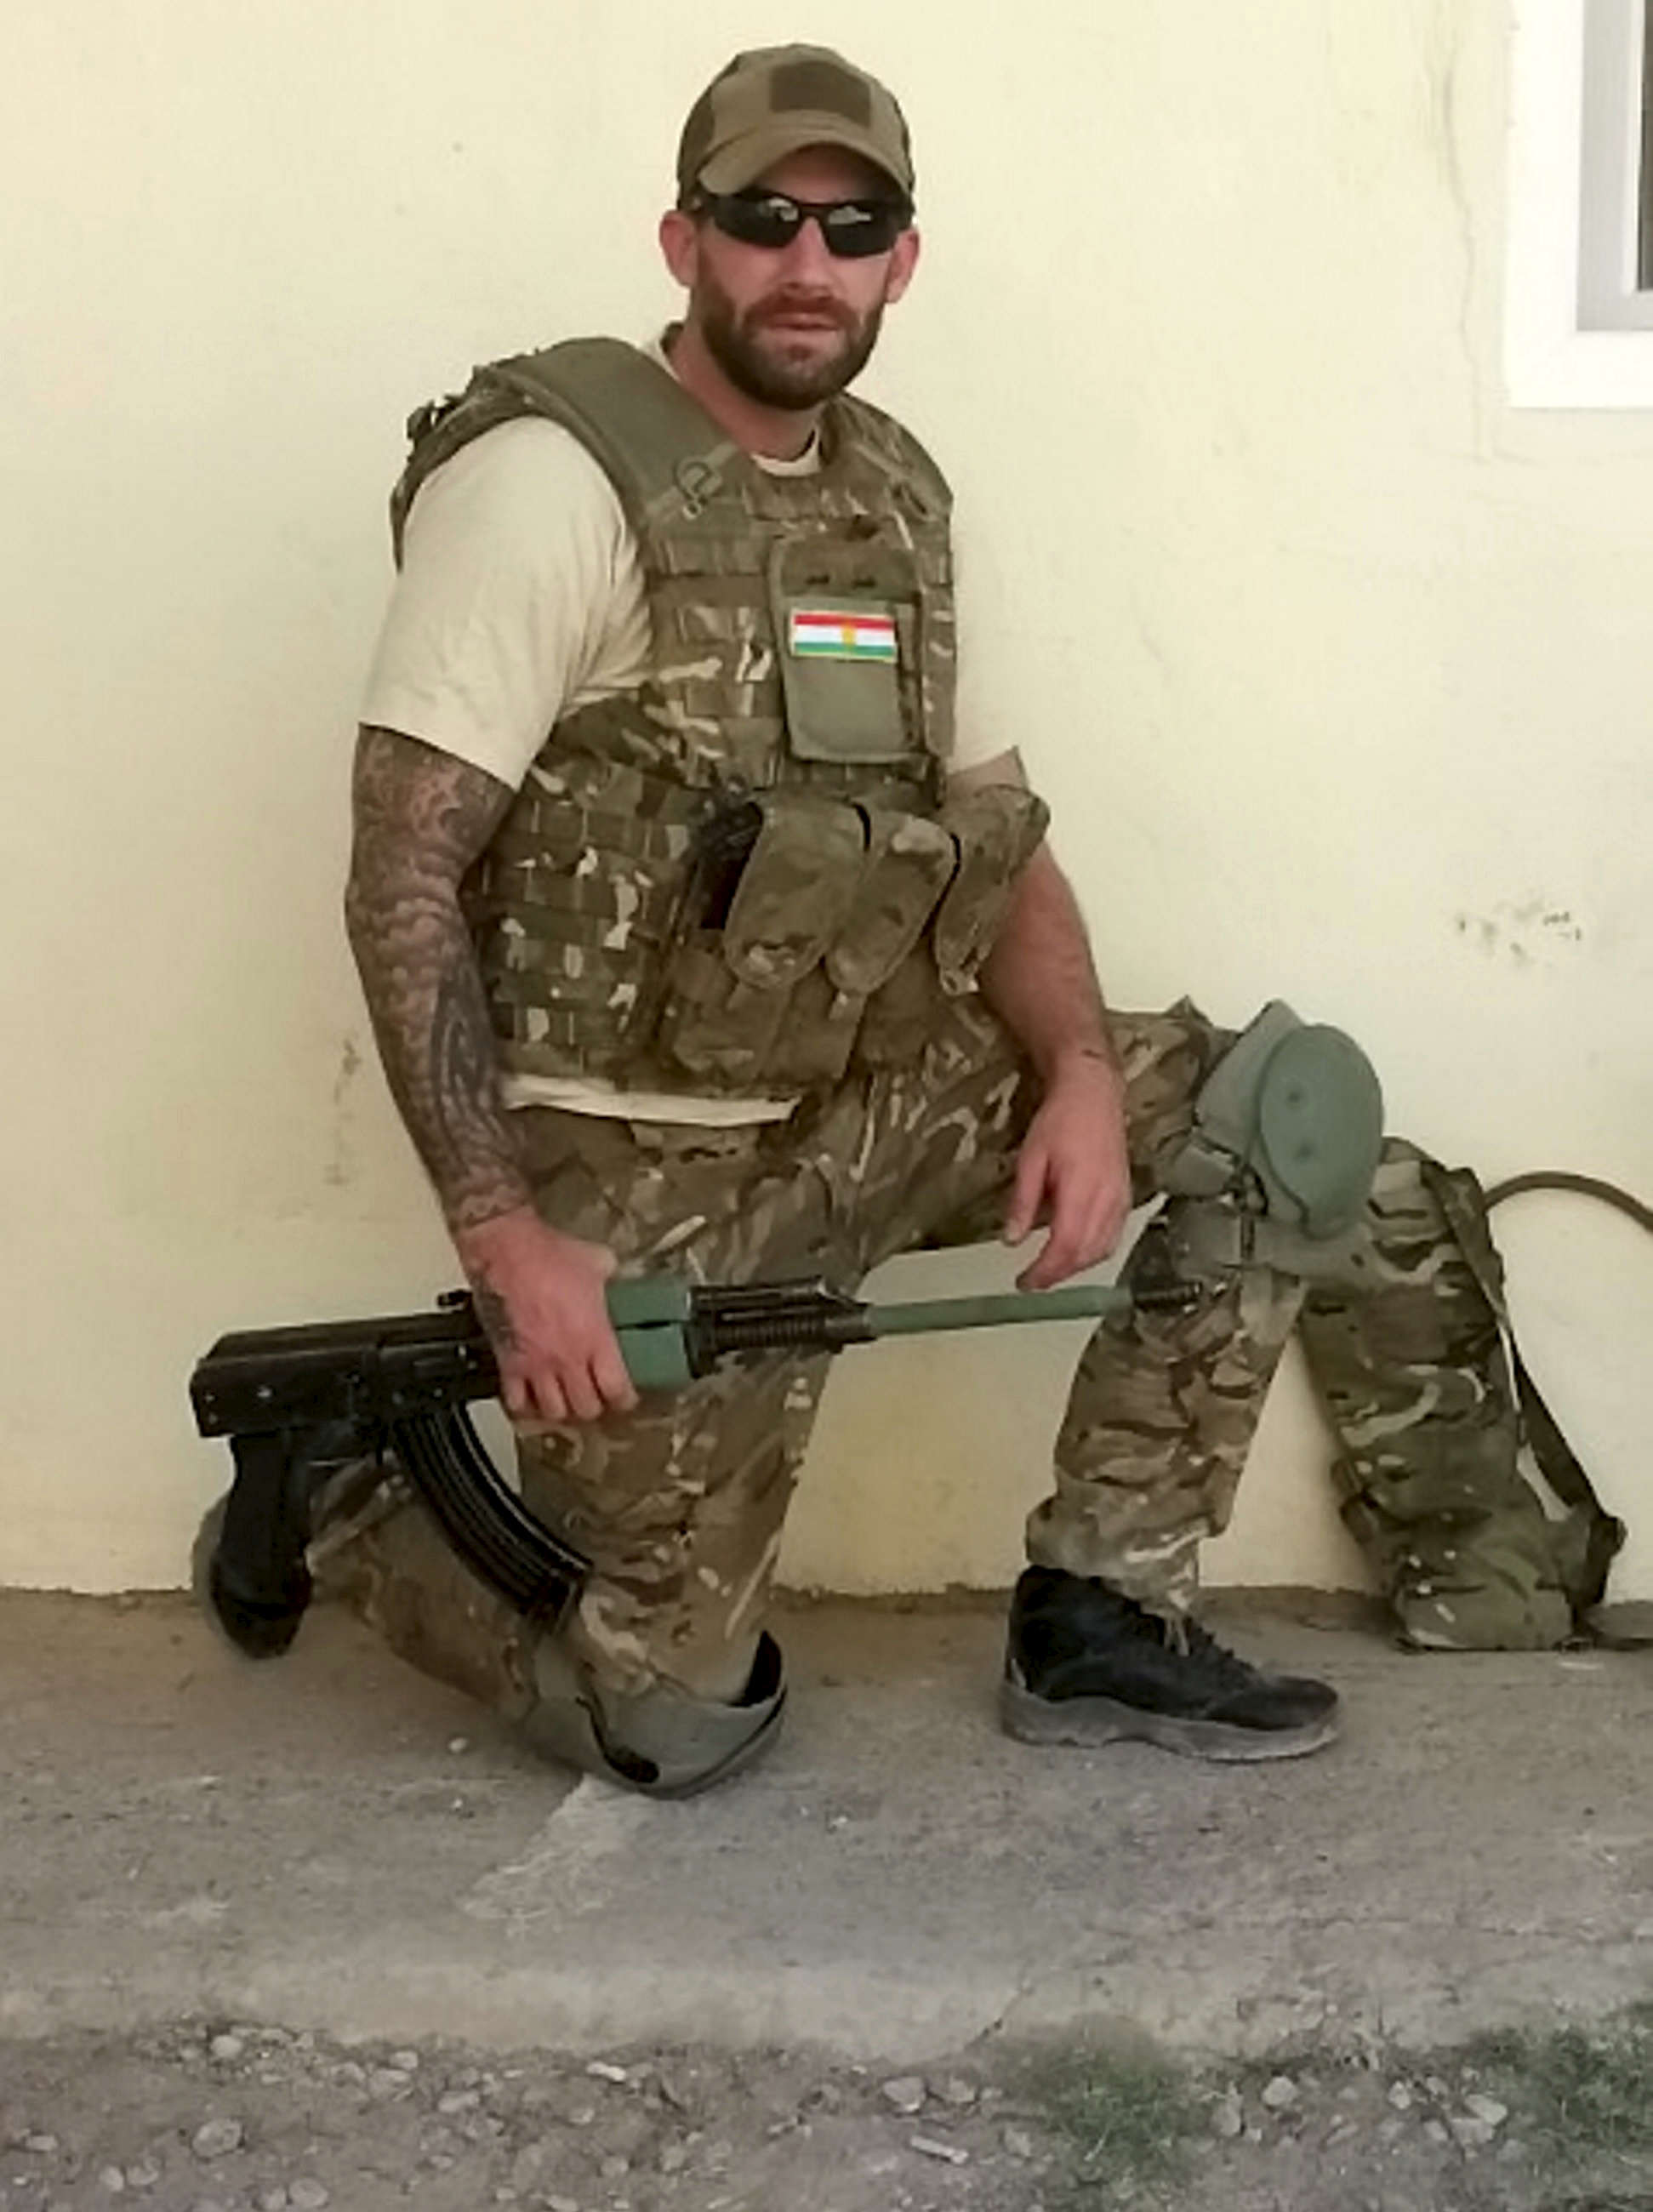 Story Of Ex Soldier Arrested When He Returned To UK From Fighting ISIS SWNS ISIS SOLDIER 01